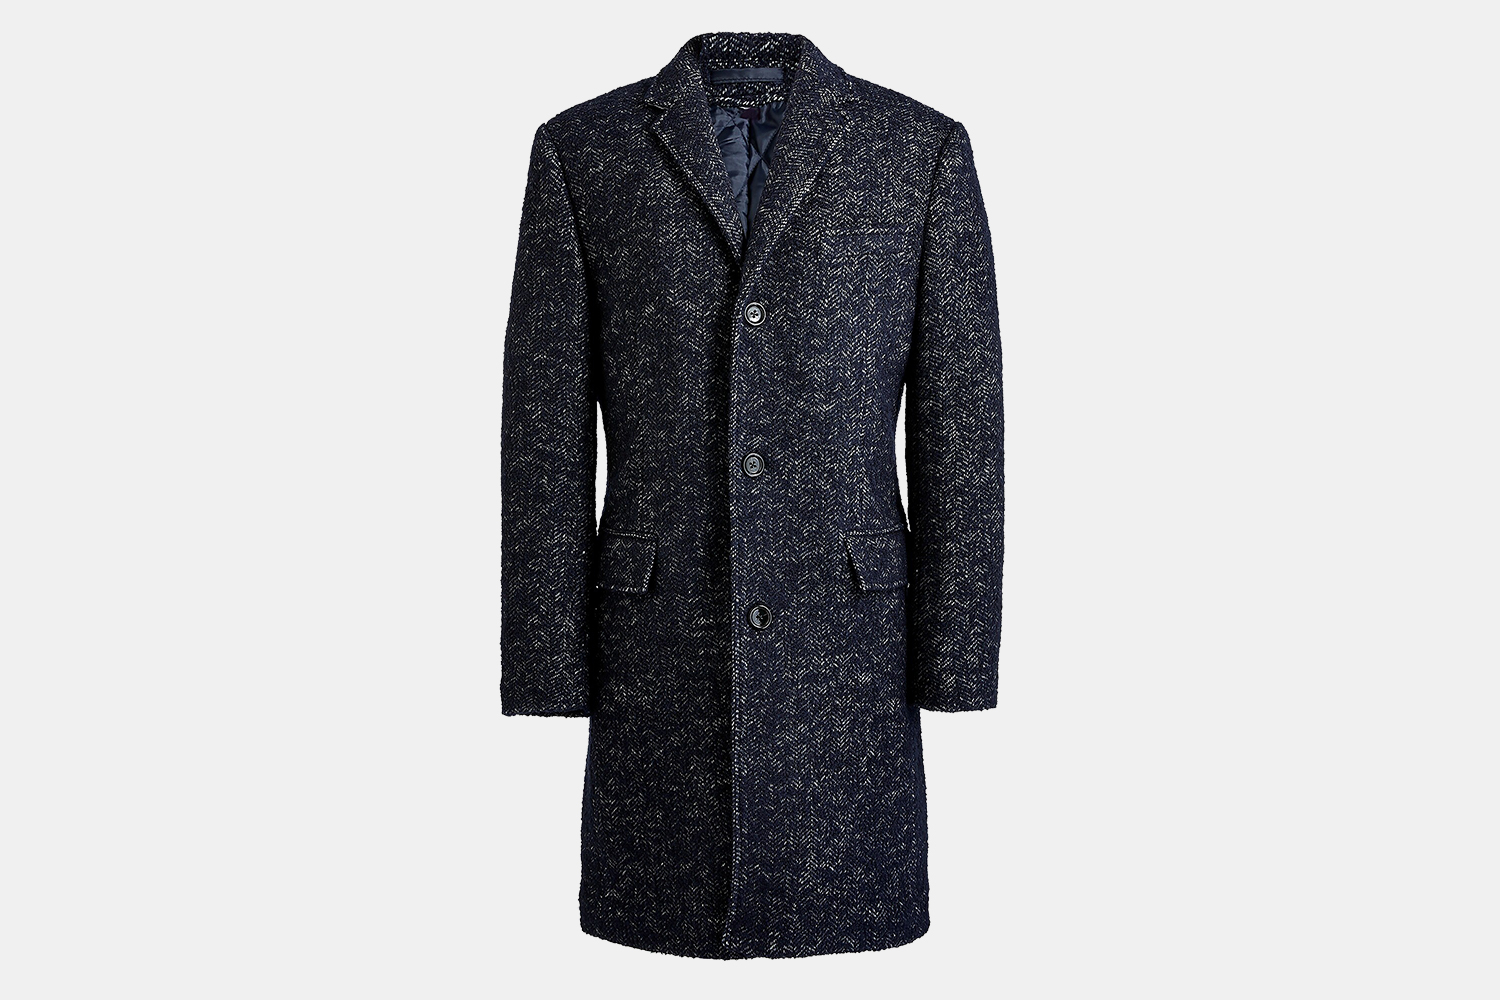 J.Crew Factory Men's Wool-Blend Herringbone Thompson Topcoat Discount